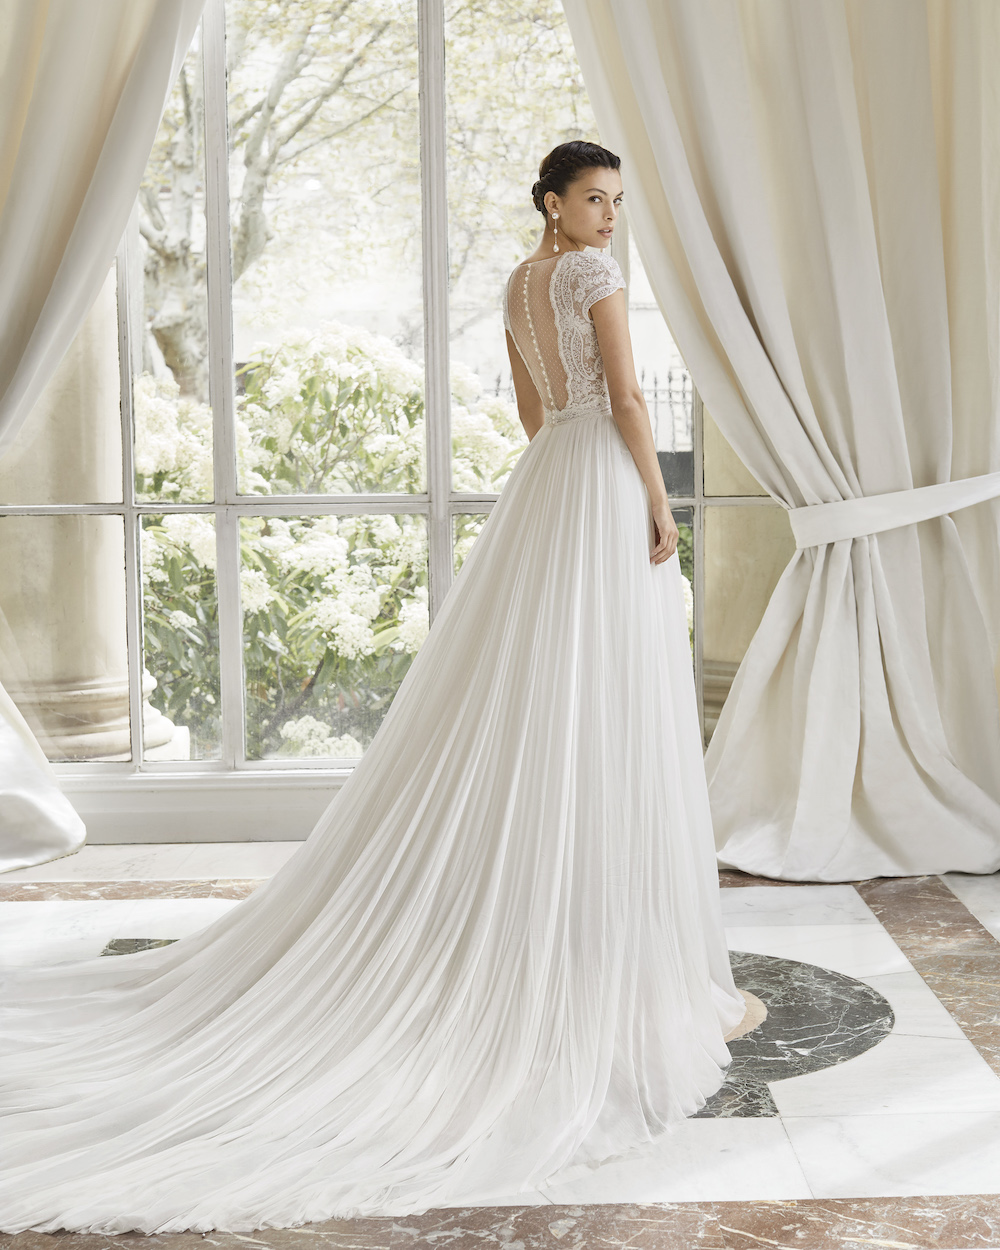 Largest Wedding Dress: The Biggest Wedding Dress Trends For Brides In 2020